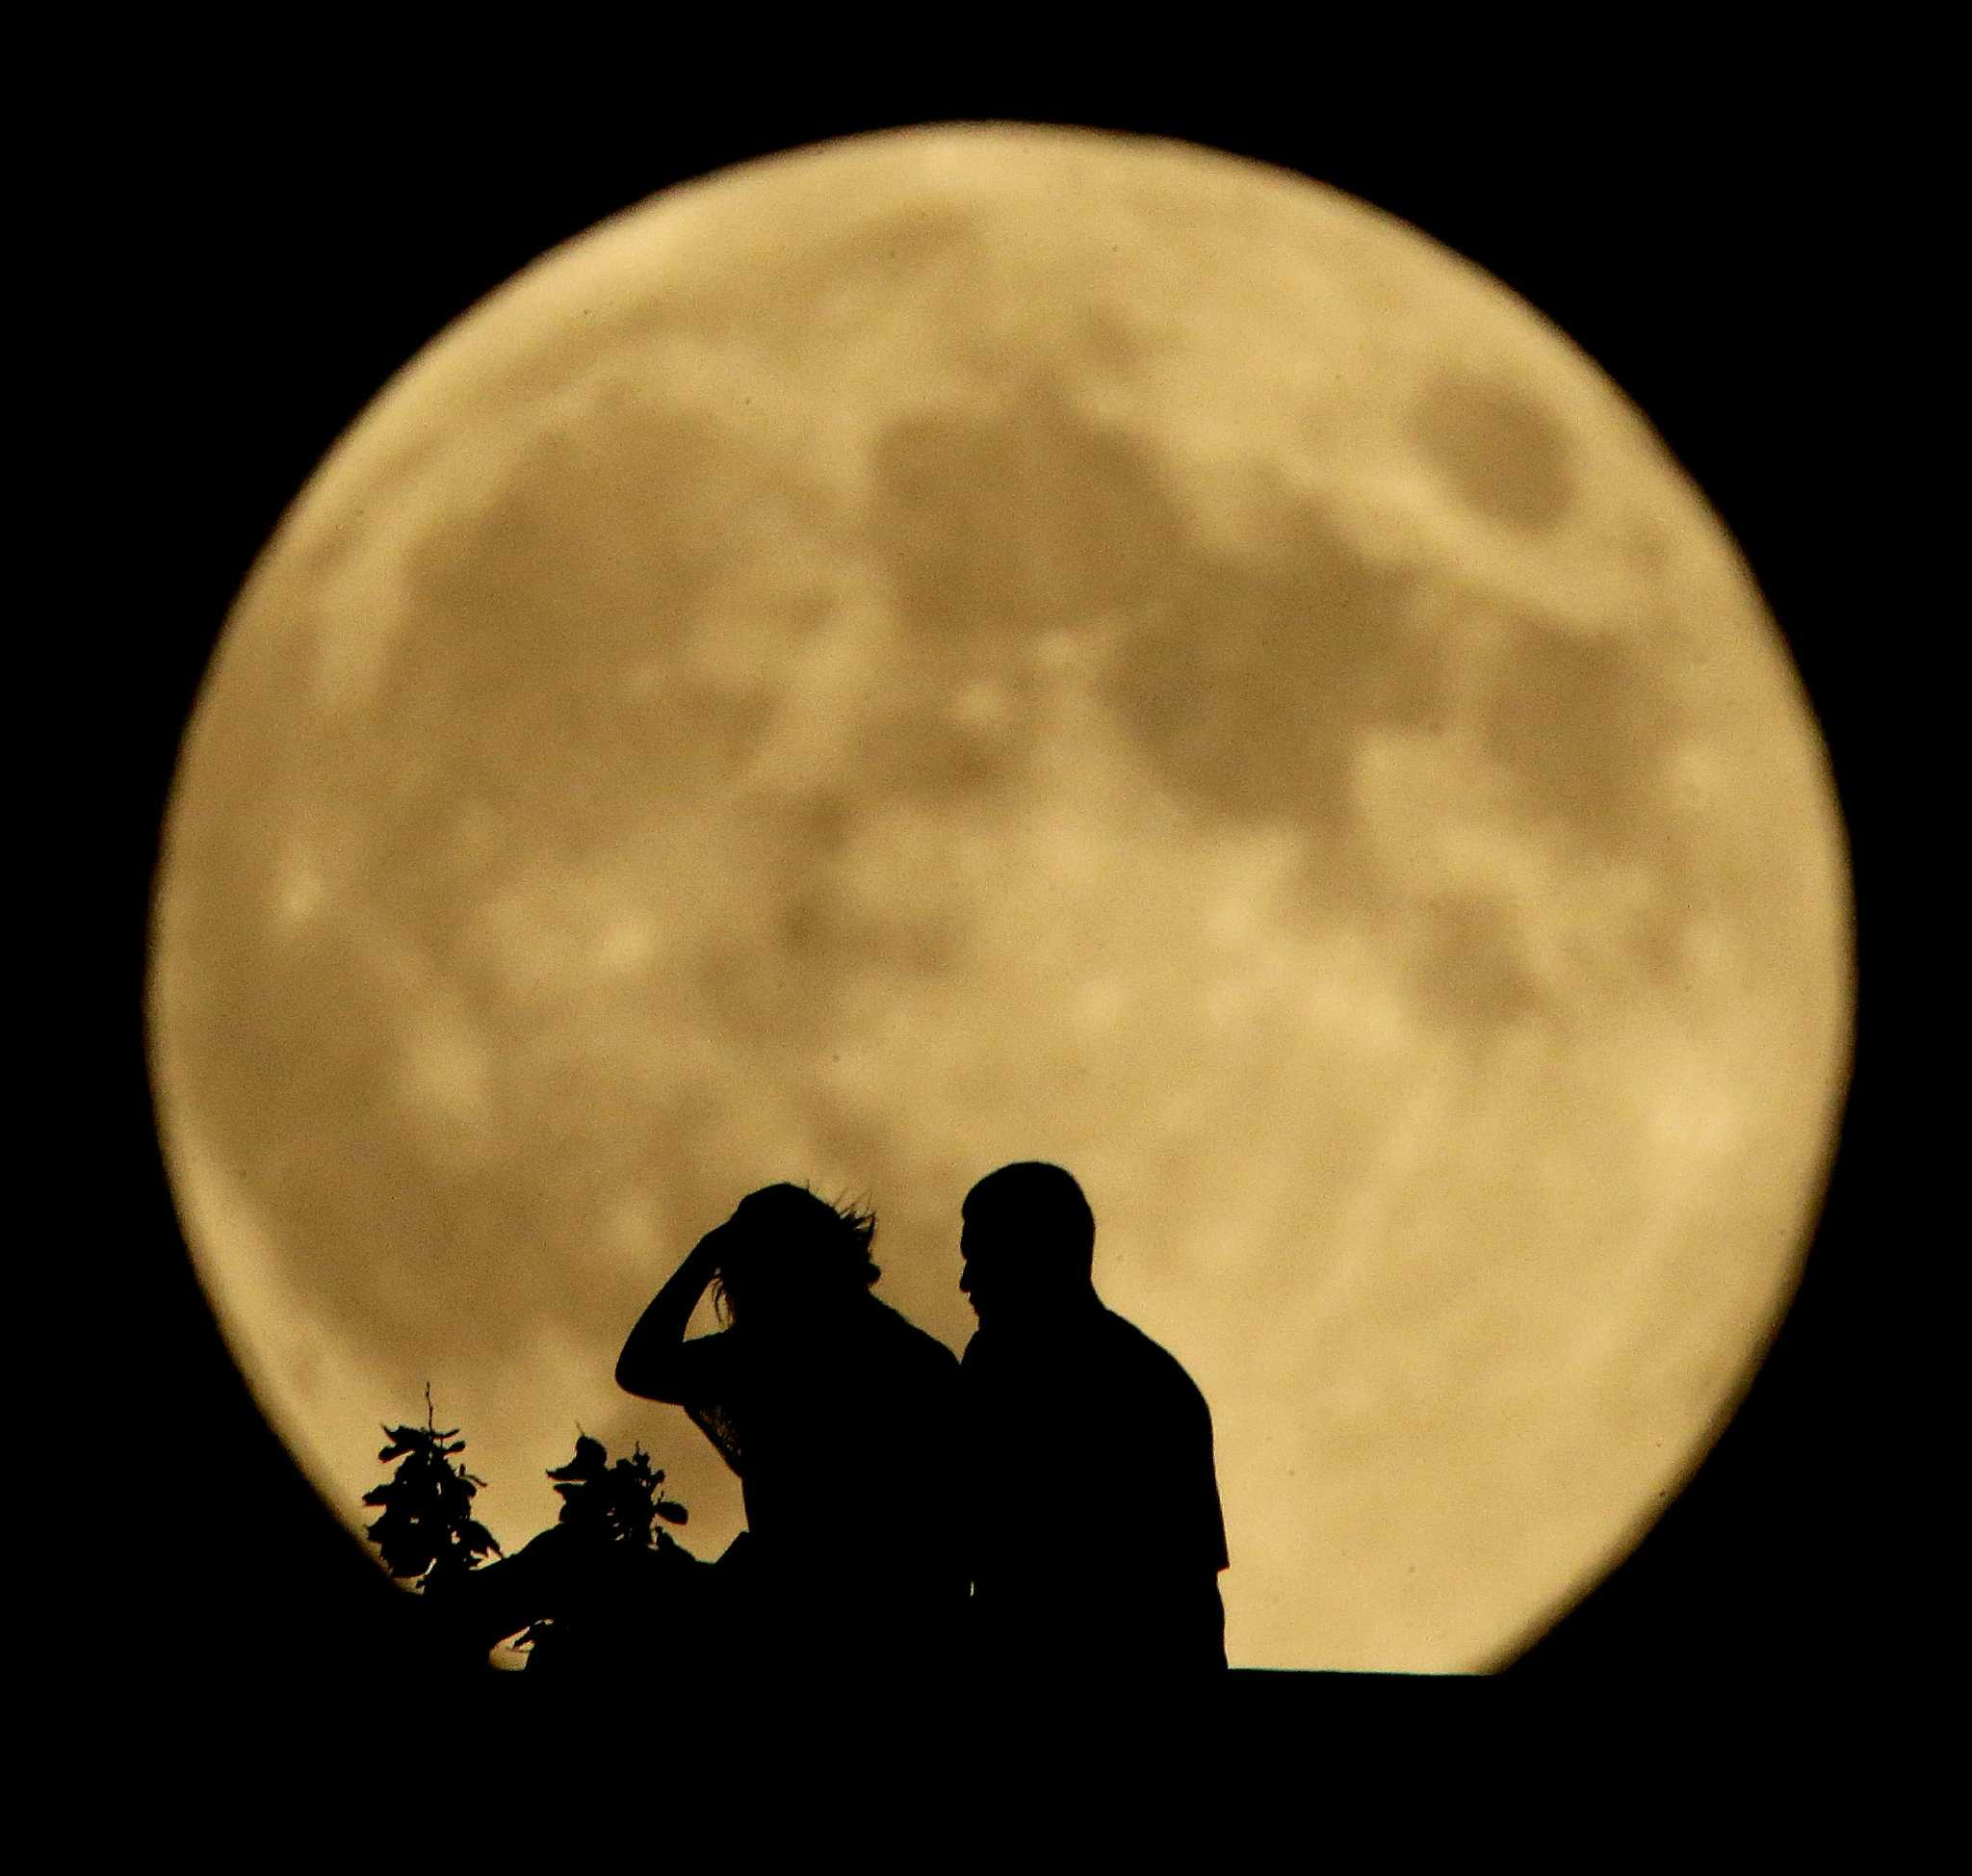 Brightest Supermoon To Be Closest To Earth In 68 Years